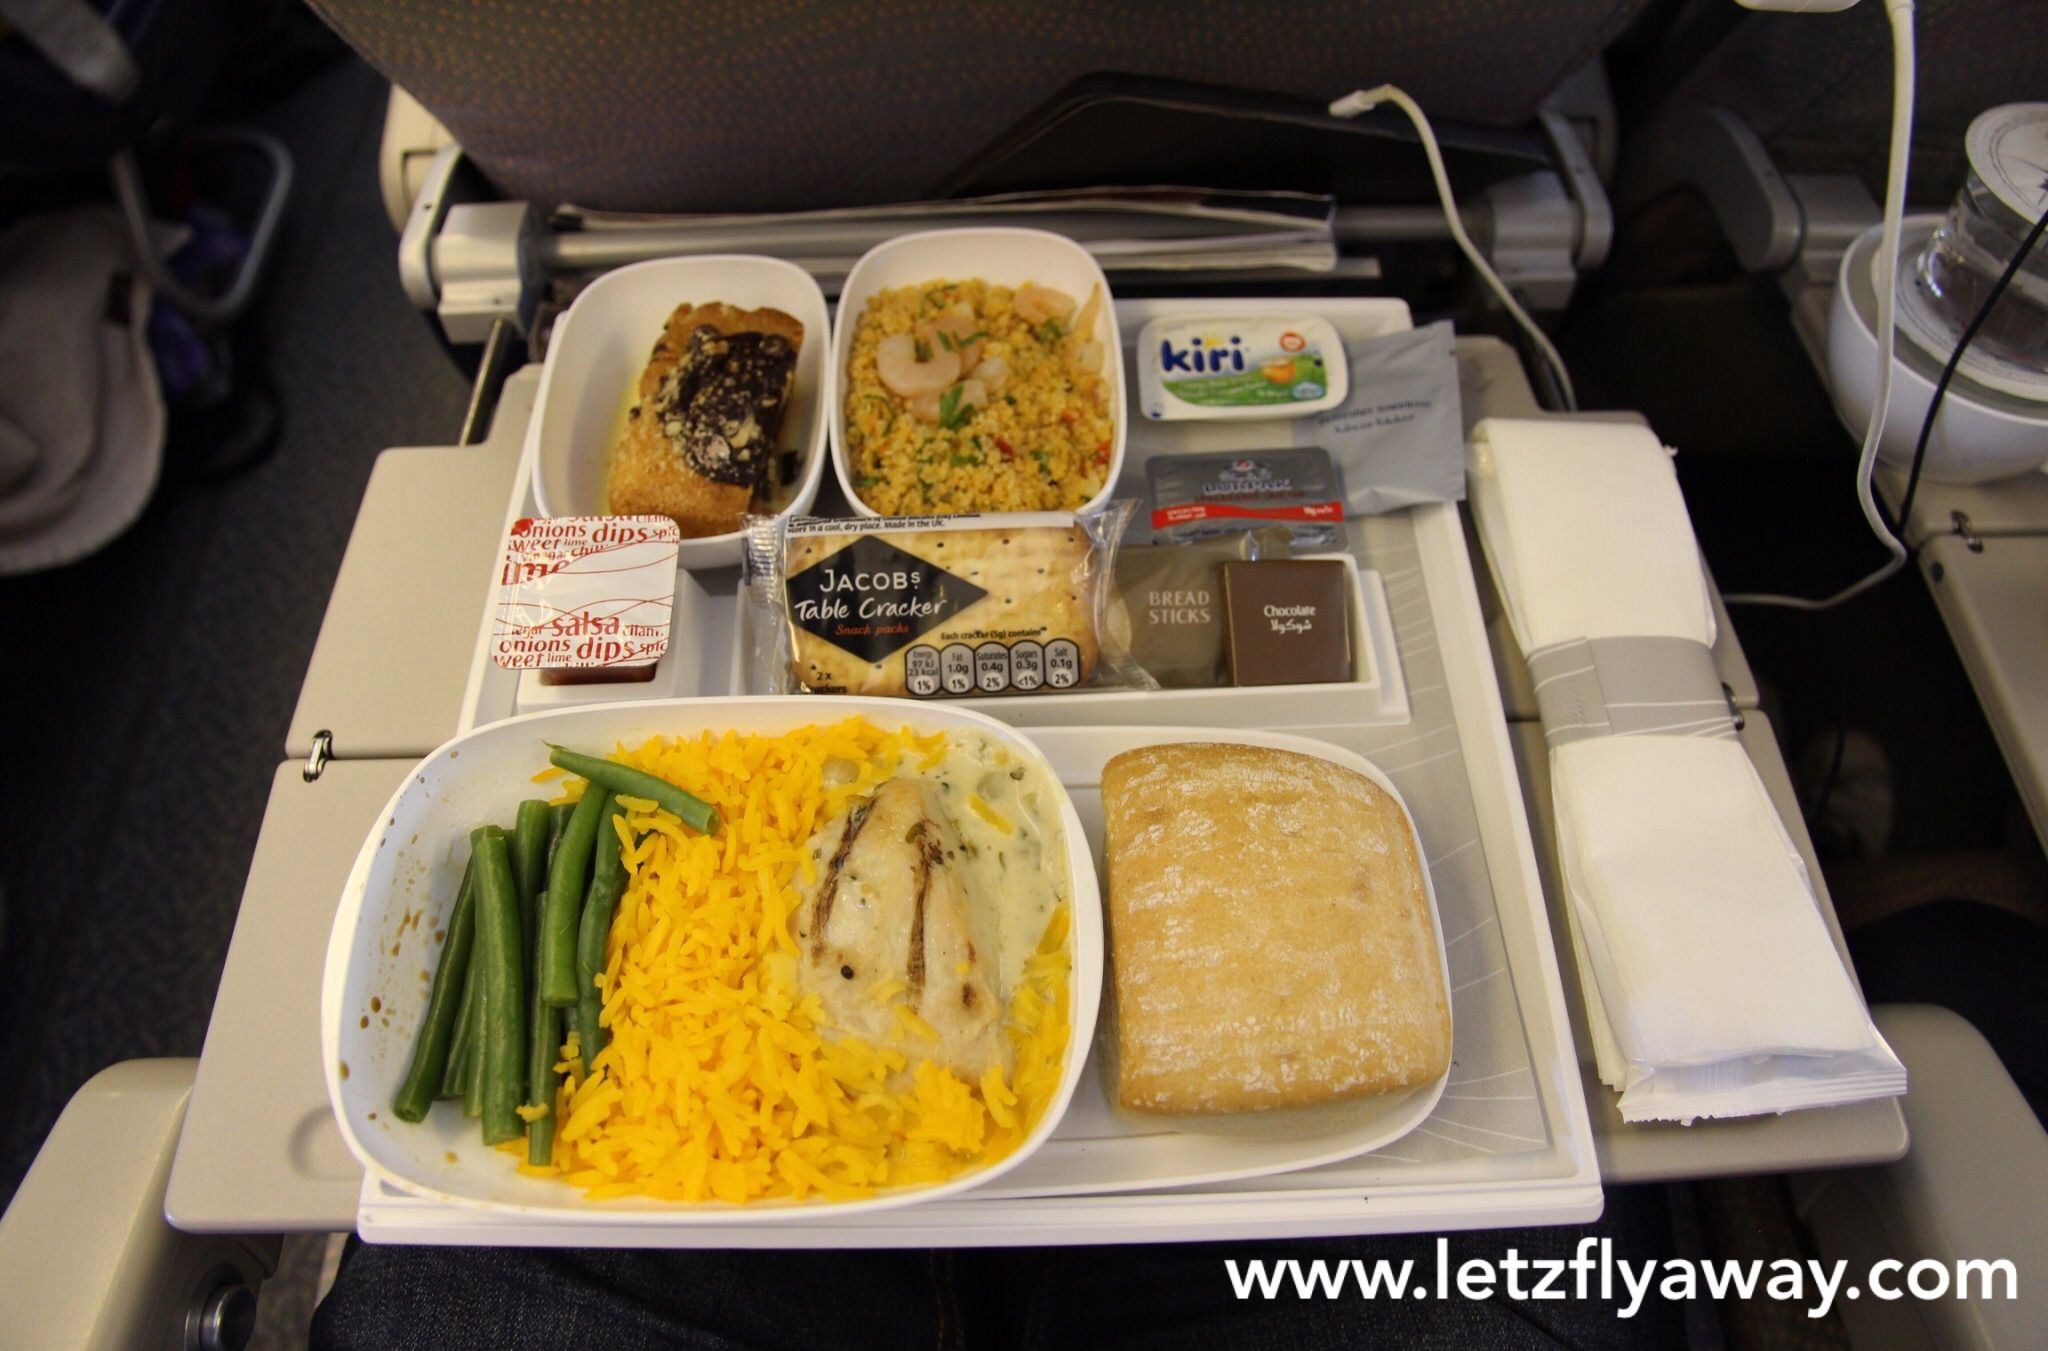 Emirates Economy Class Flight Review Airline Food Food In Flight Meal